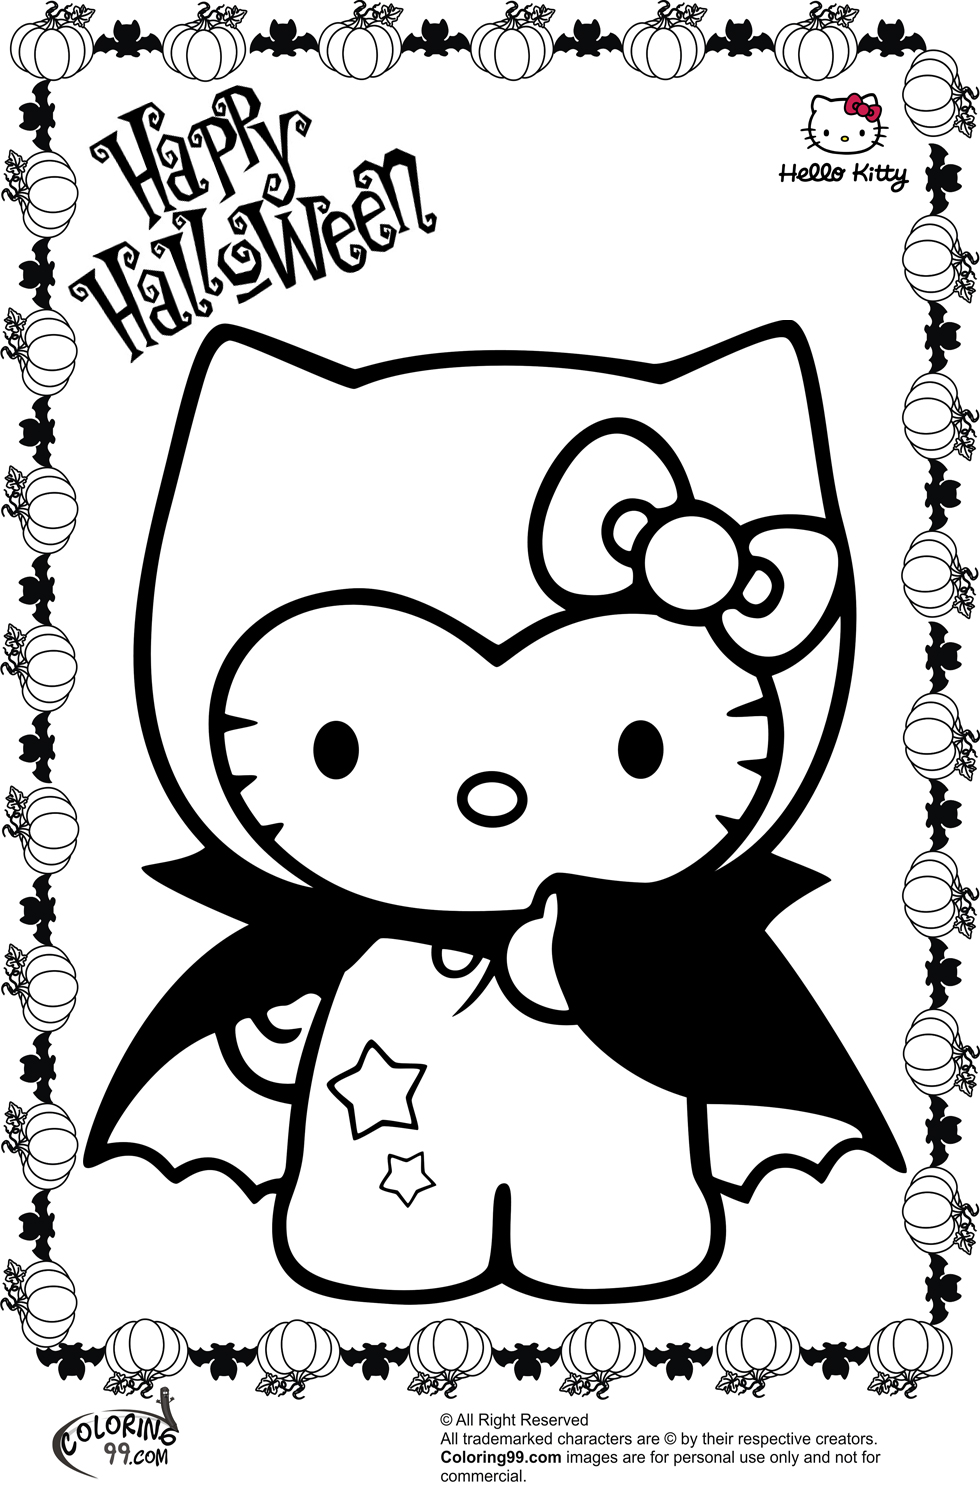 printable coloring pages halloween | October 2013 | Team colors